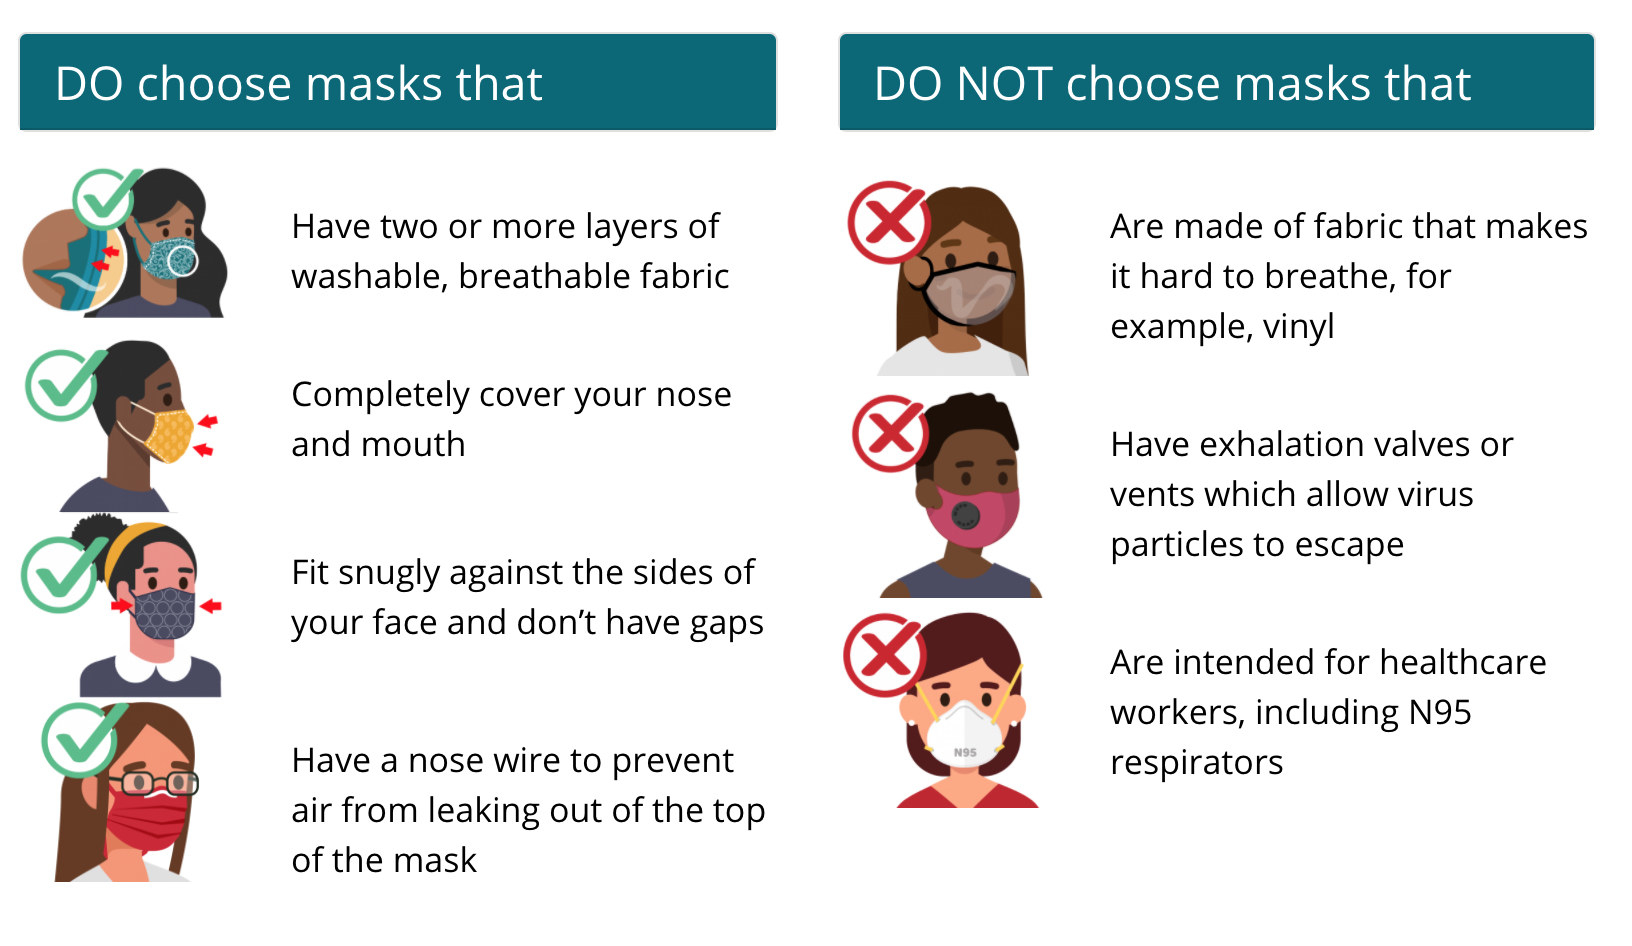 An infographic displaying CDC guidelines for mask-wearing